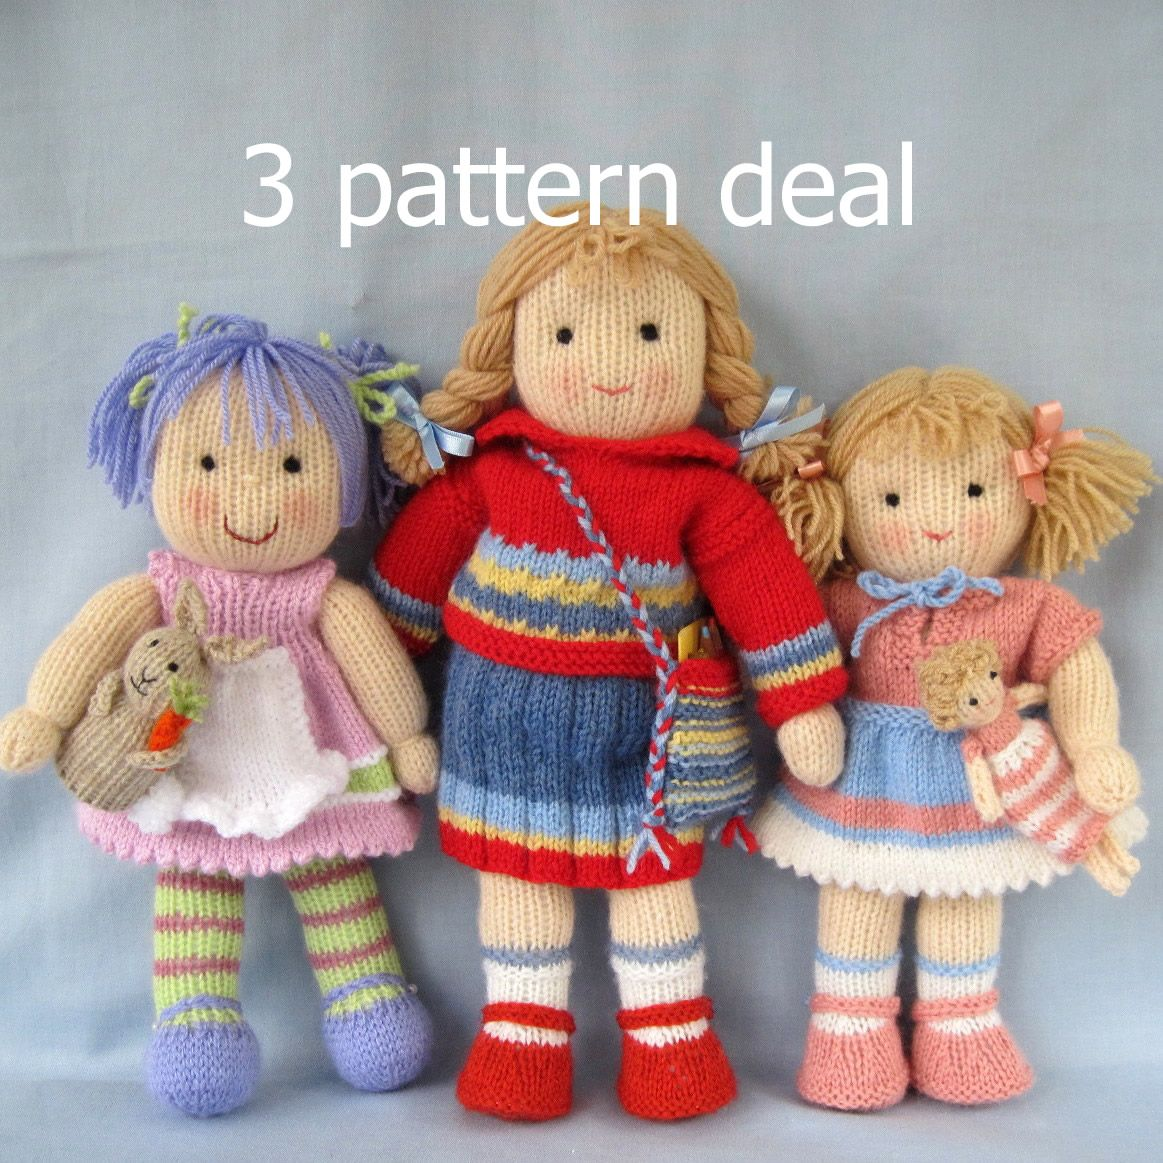 Free Knit Amigurumi Patterns : dollytime: Dolls knitted doll patterns Amigurumi y munecas Pinterest Kn...